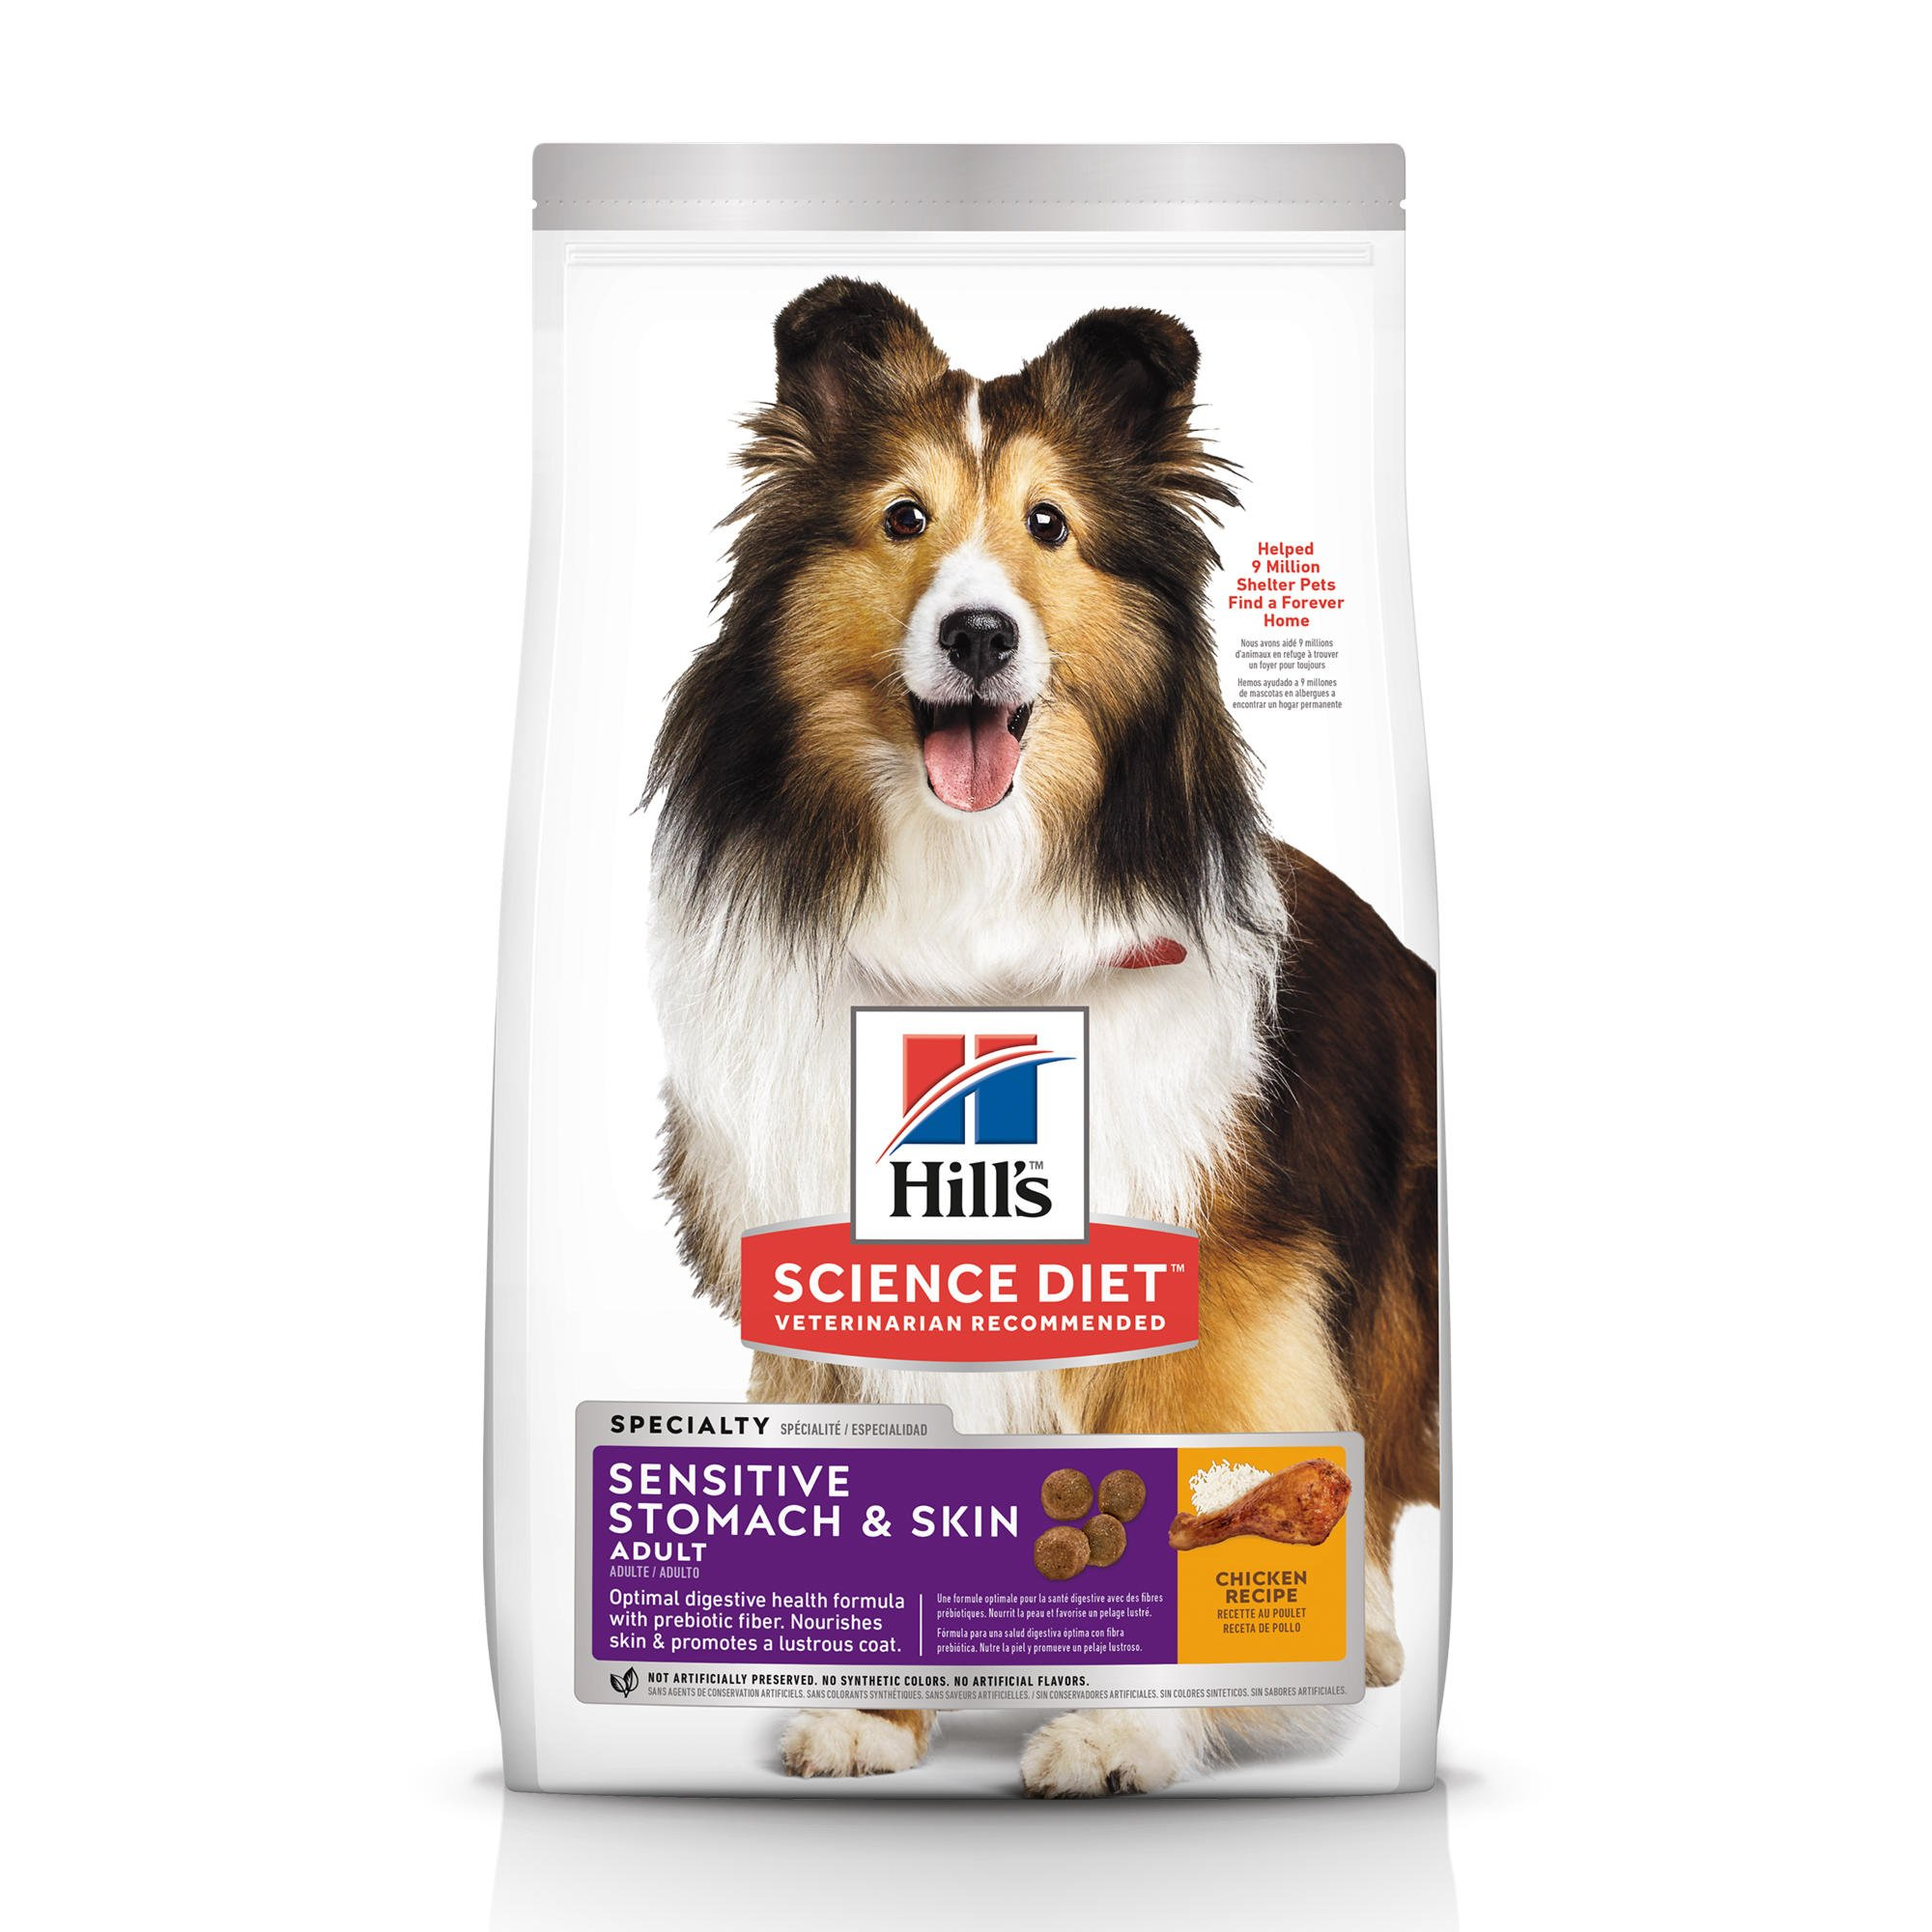 Good Dry Dog Food For Sensitive Stomach